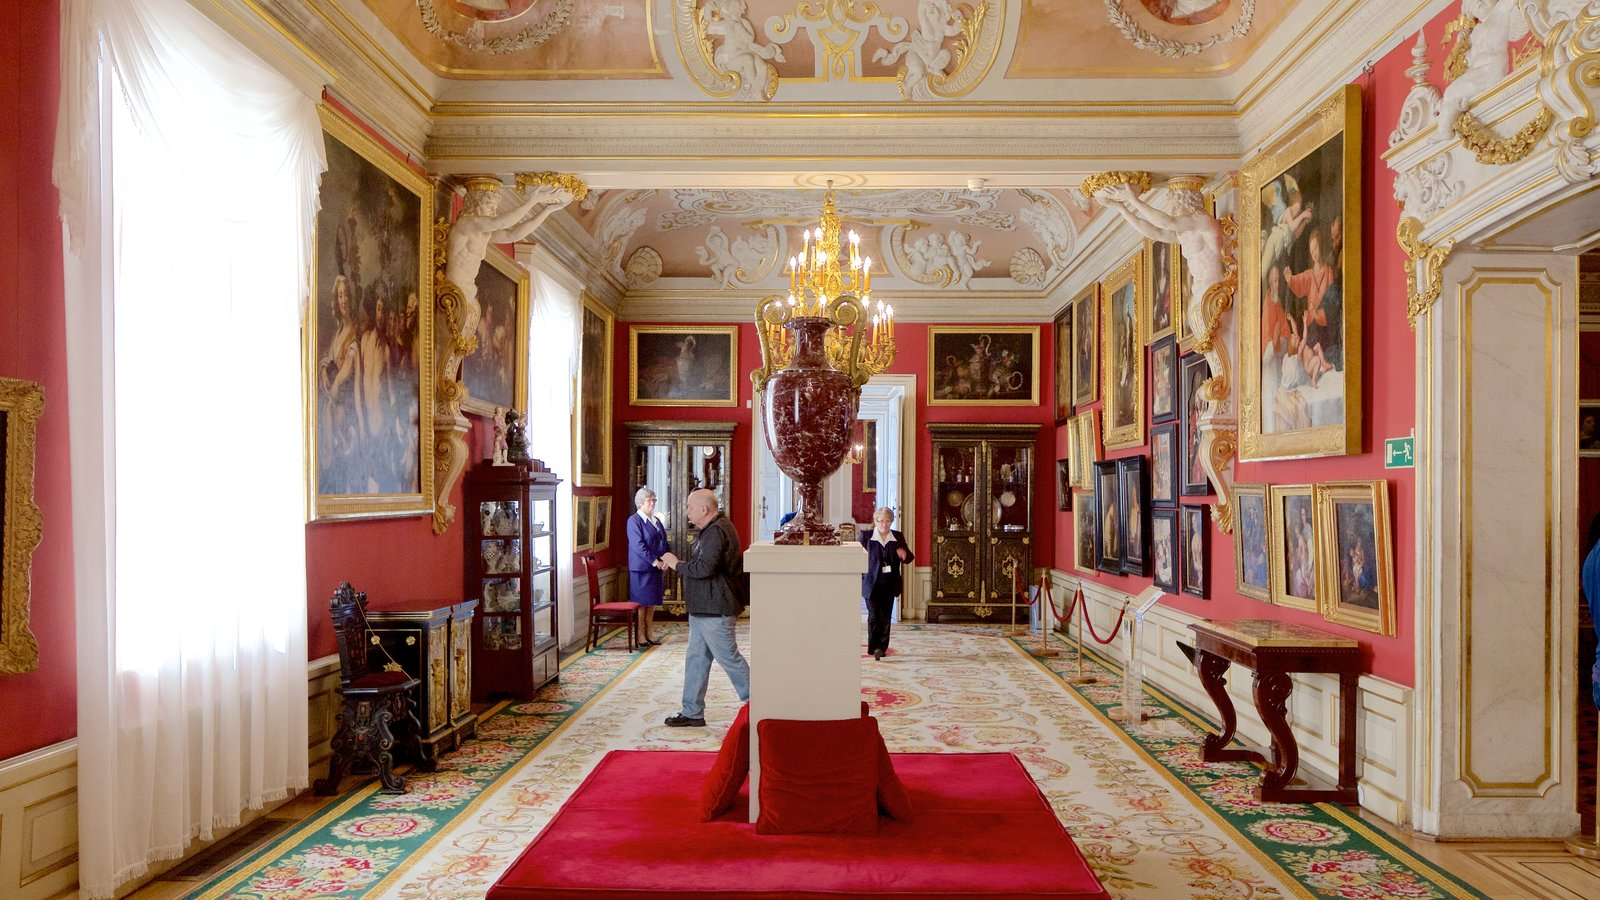 Wilanow Palace featuring heritage elements, art and interior views